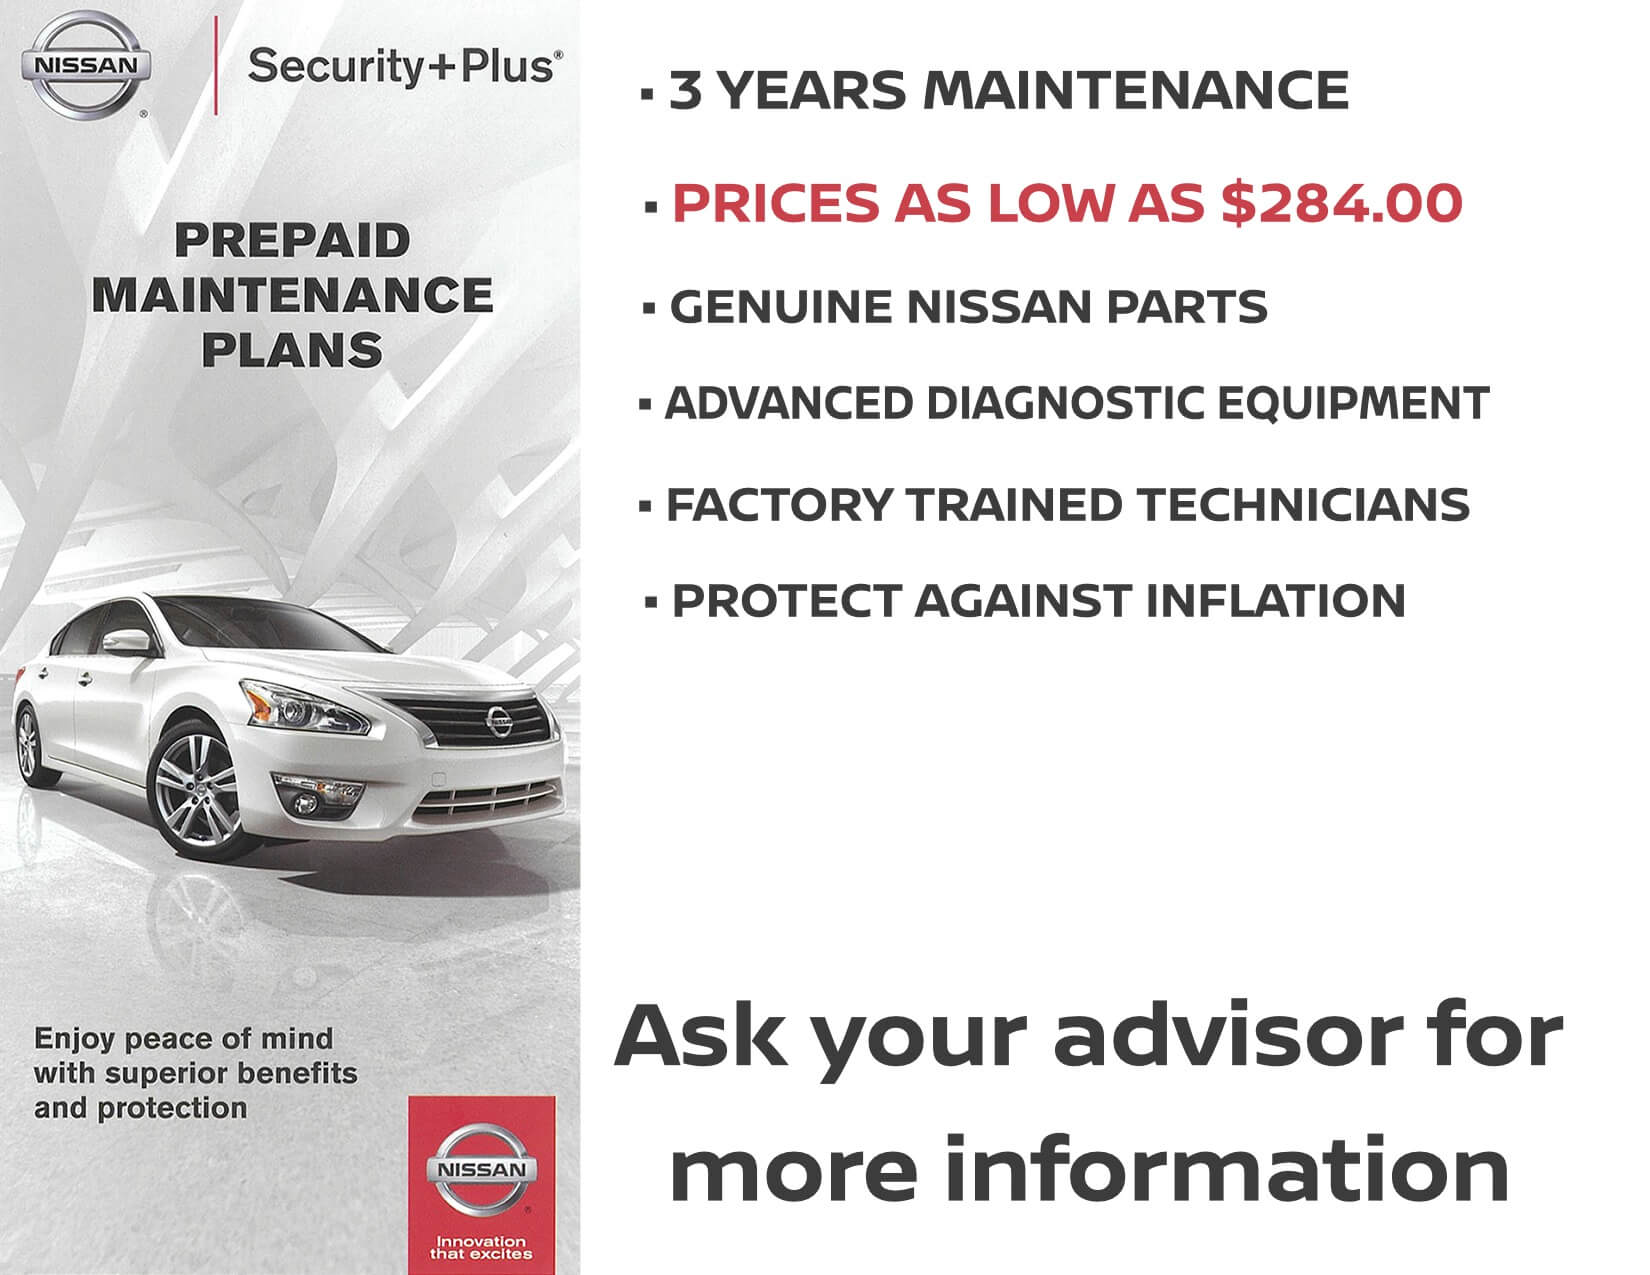 Pre-Paid Maintenance Plans at Mt Holly Nissan - Ask your advisor for more information